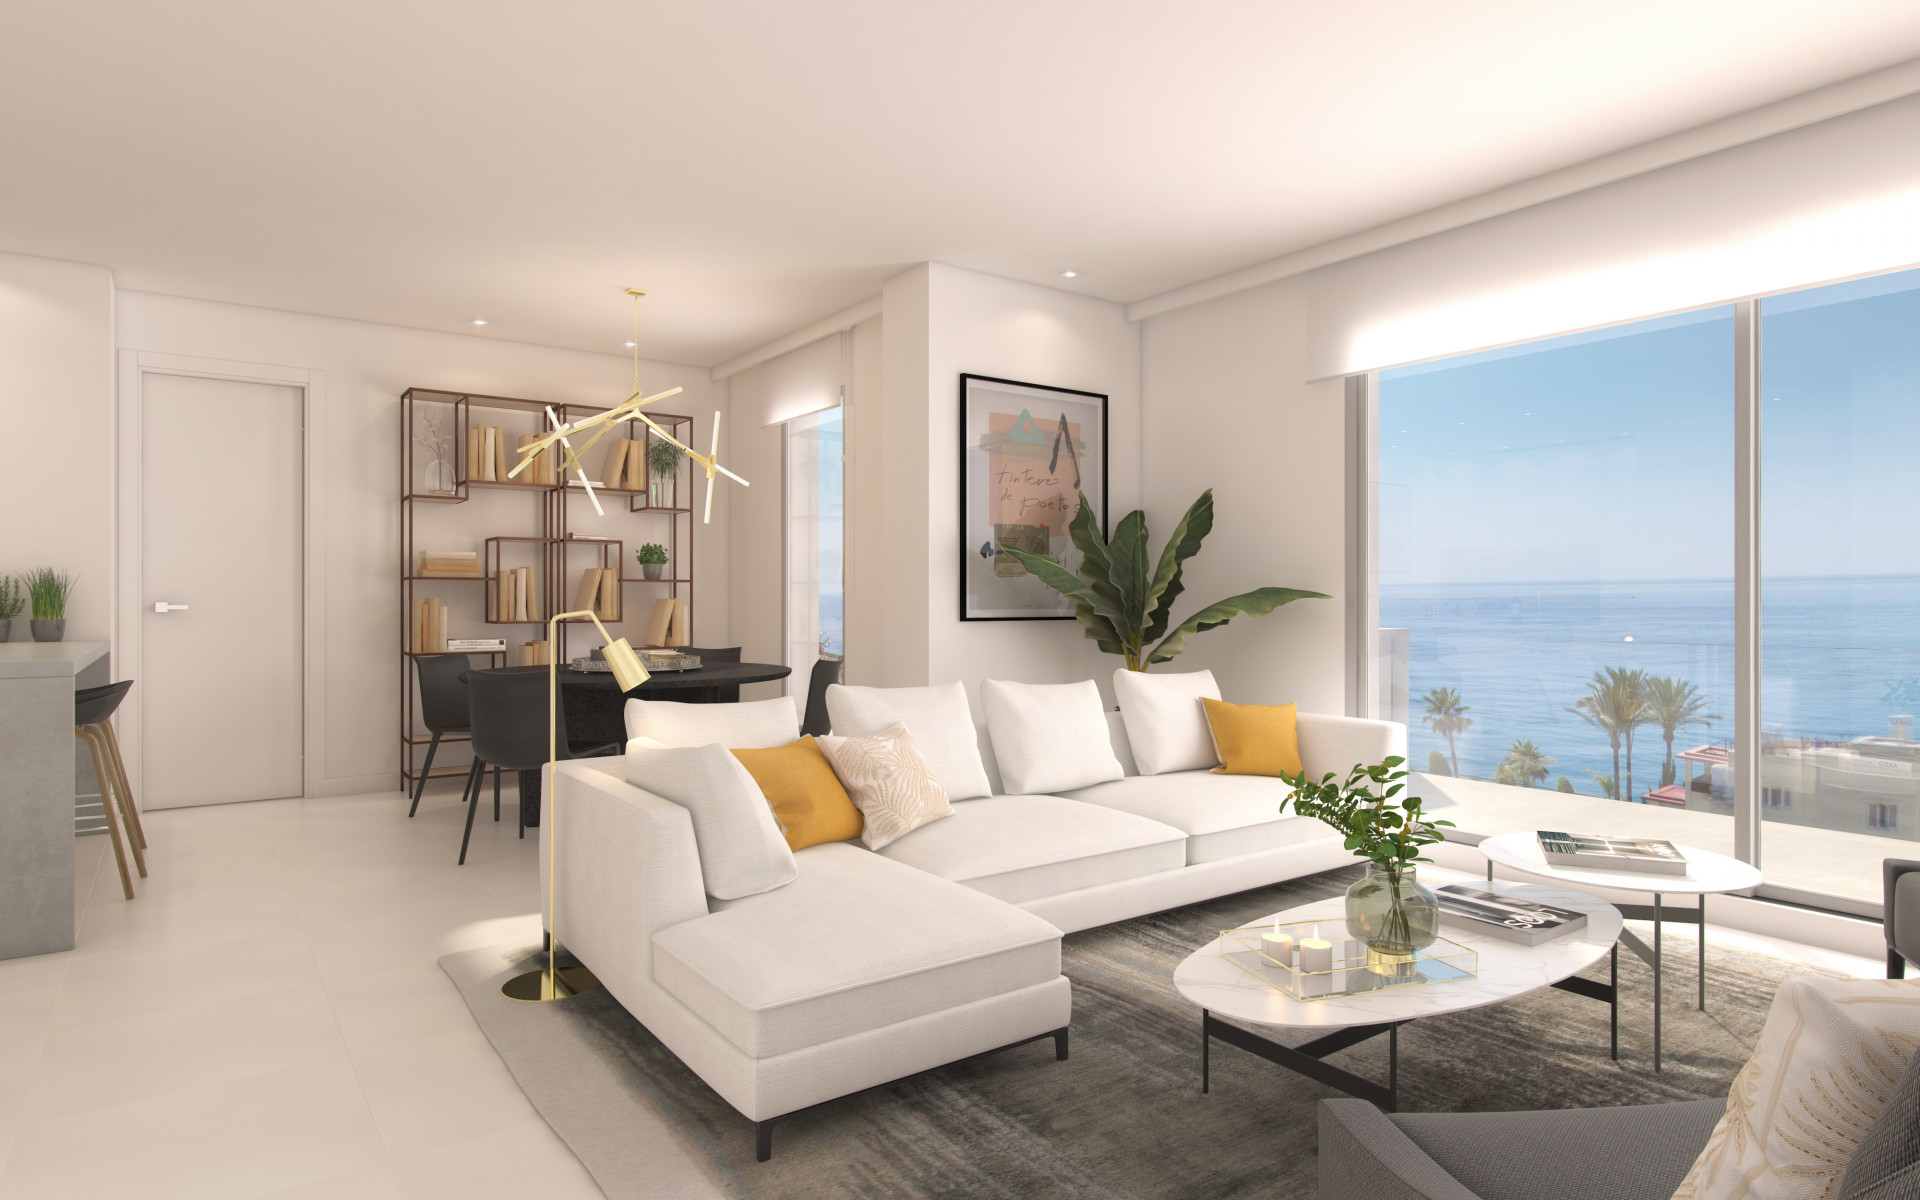 Penthouse  for sale in  Torrequebrada, Benalmadena